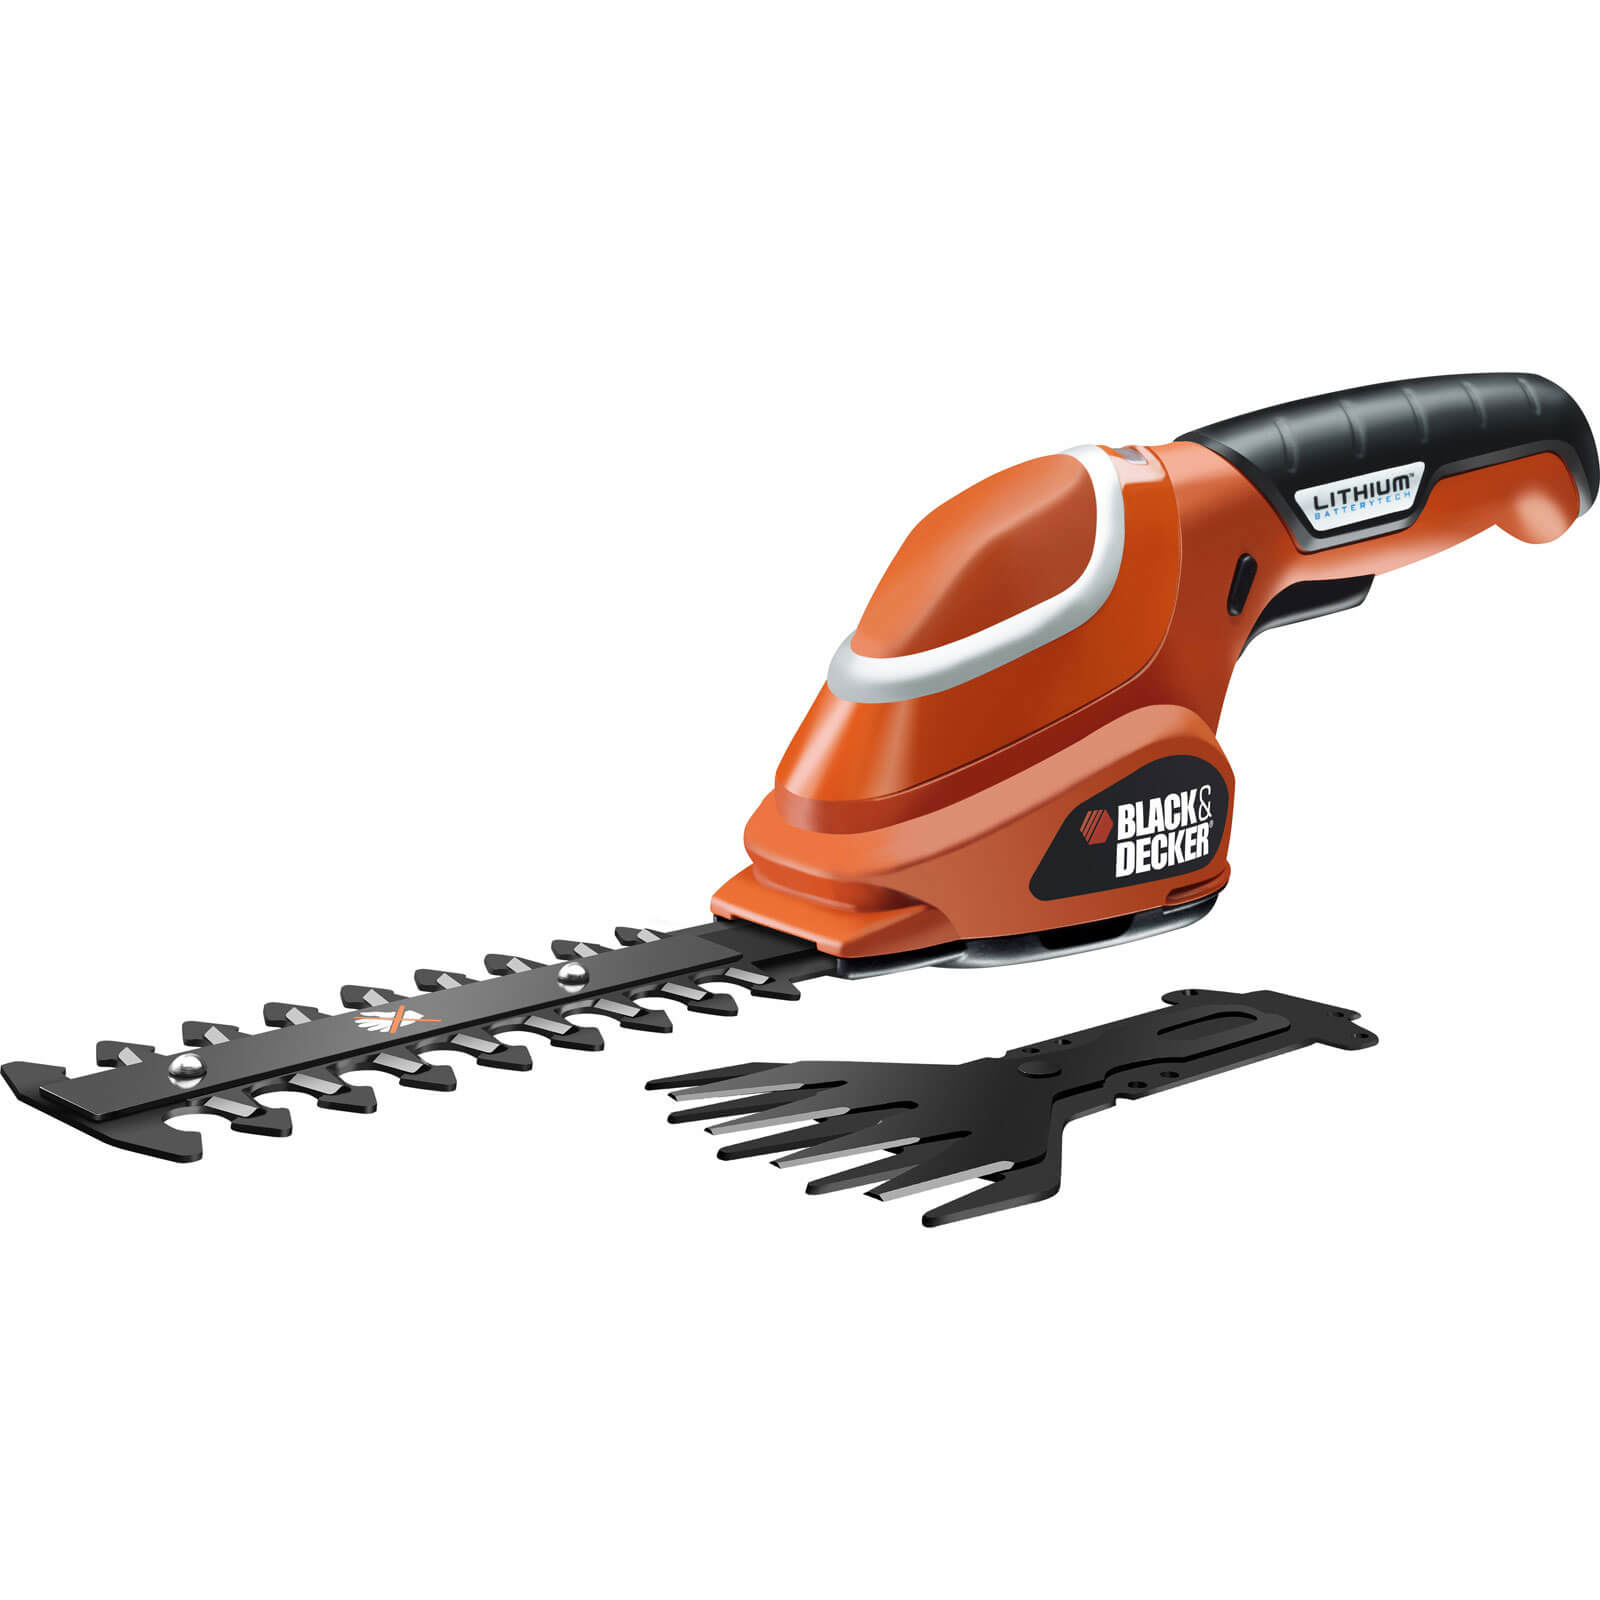 Black & Decker GSL 700 7v Cordless Shear Shrubber with Internal Lithium Ion Battery 1.2Ah